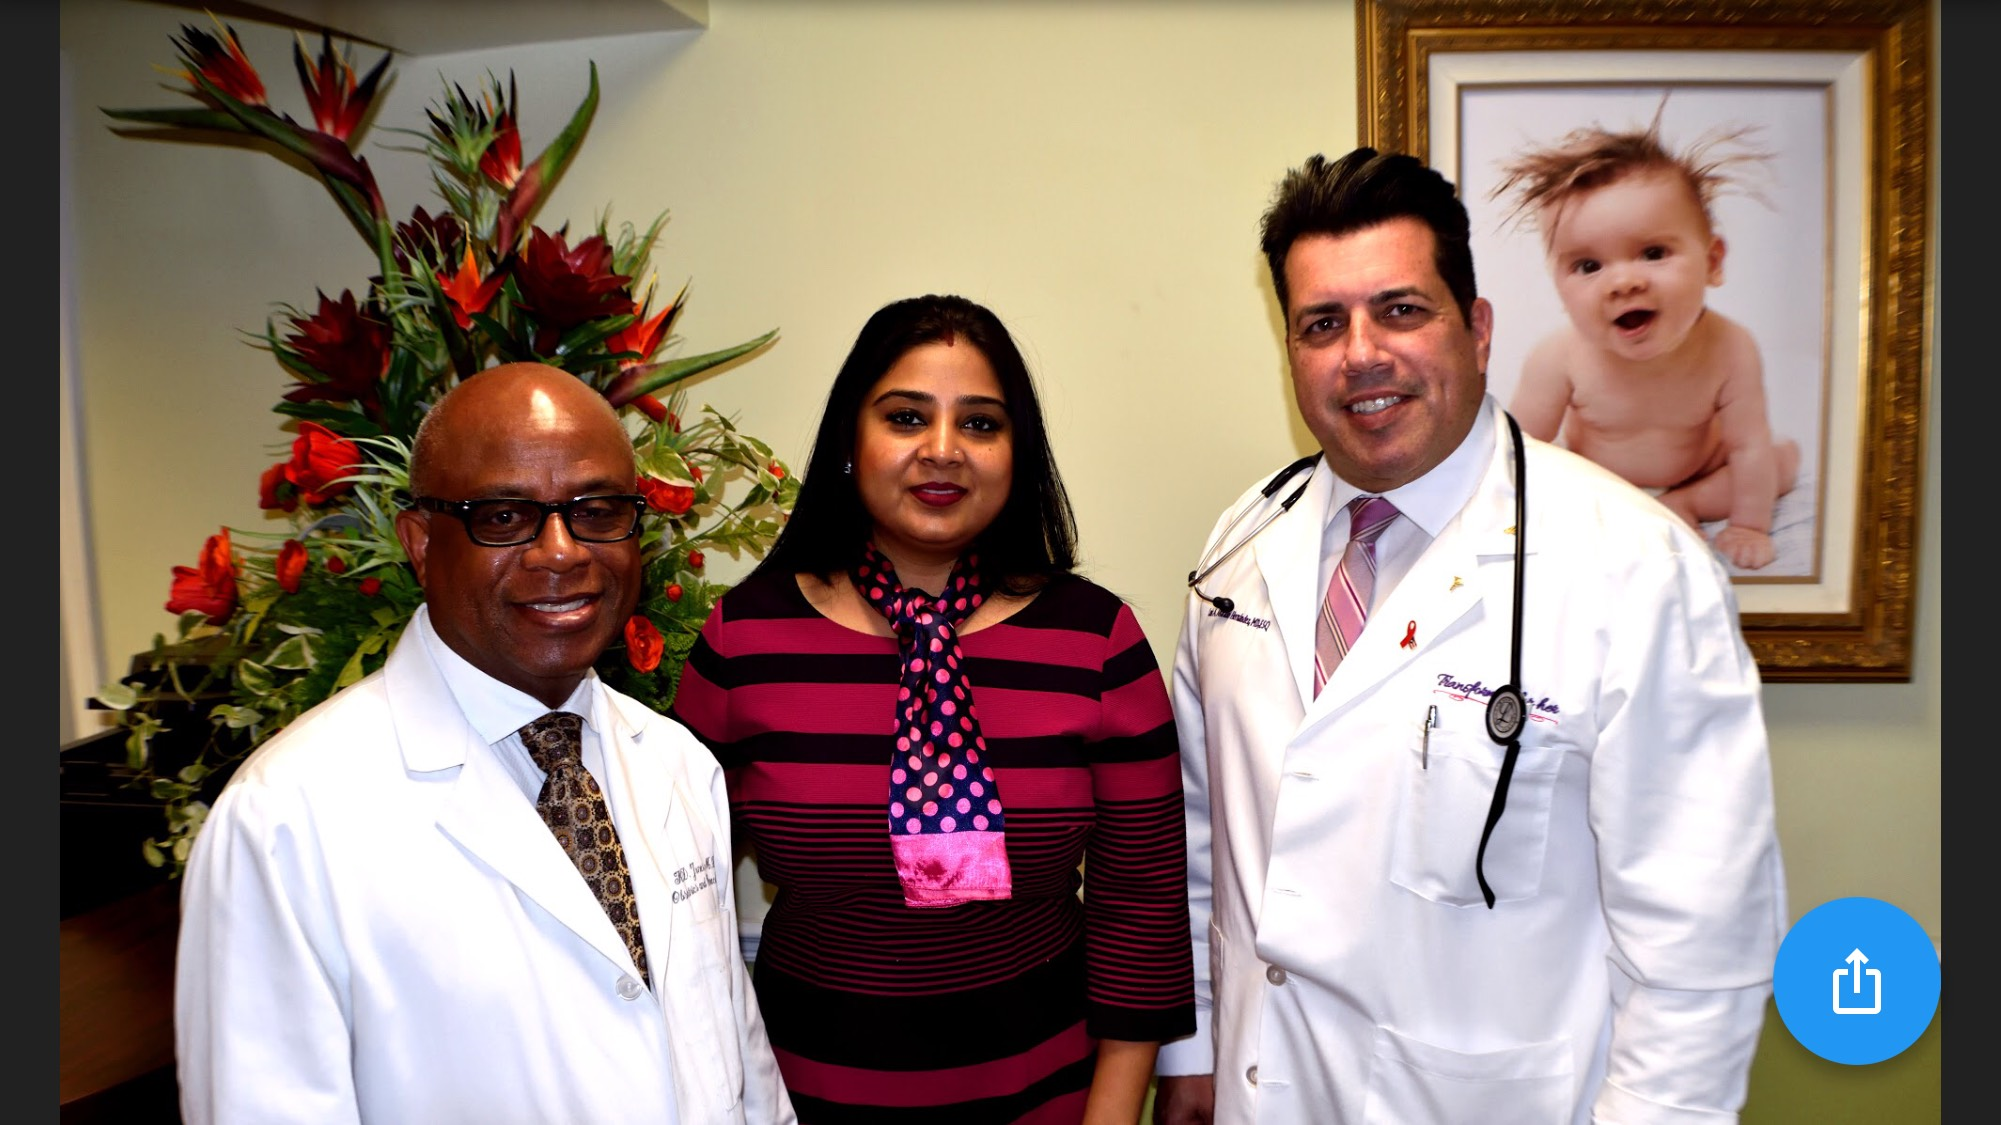 Doctors with staff